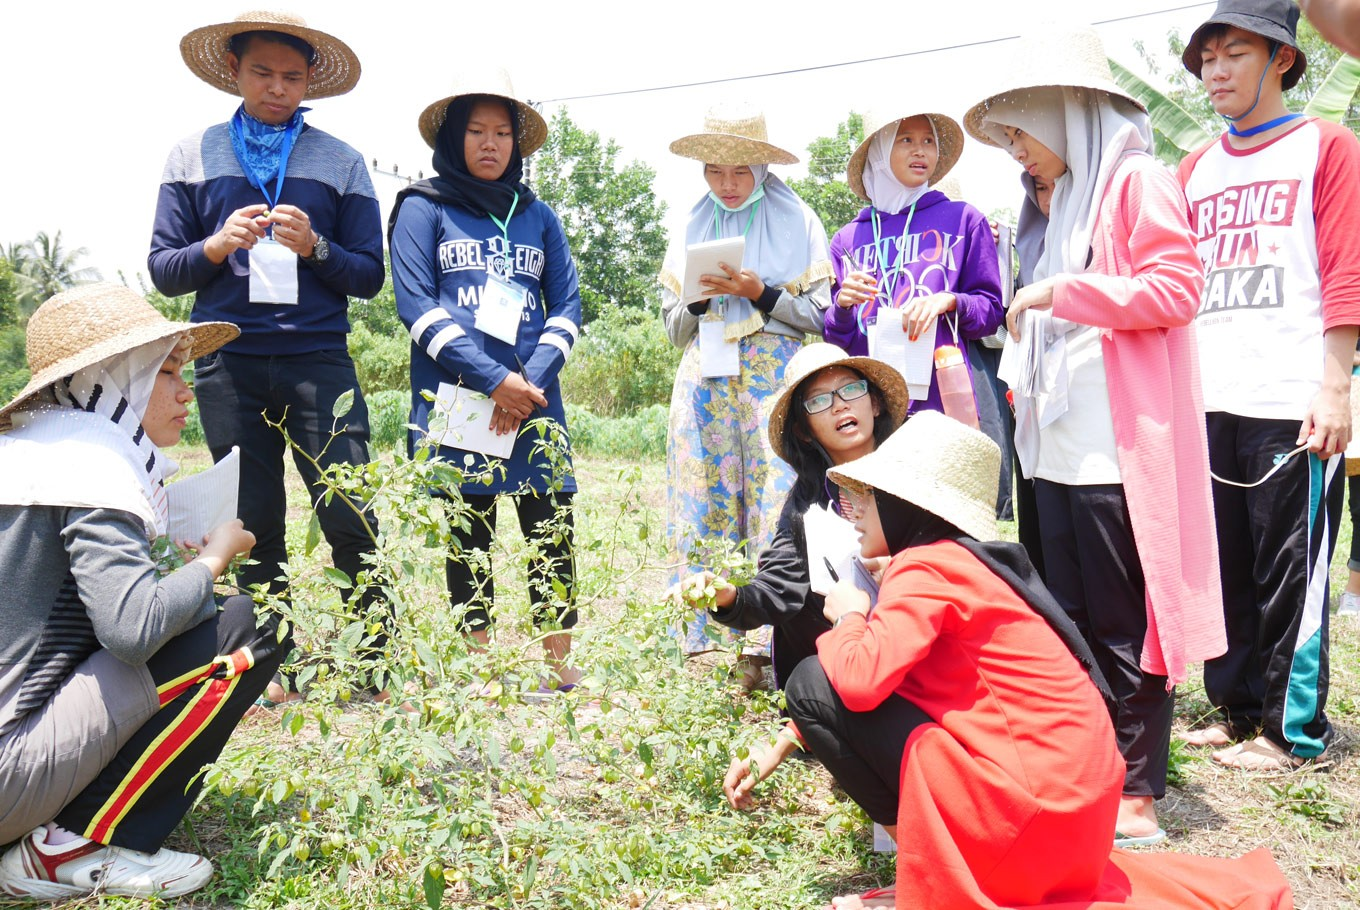 Re-introducing farming to the young people in Borneo